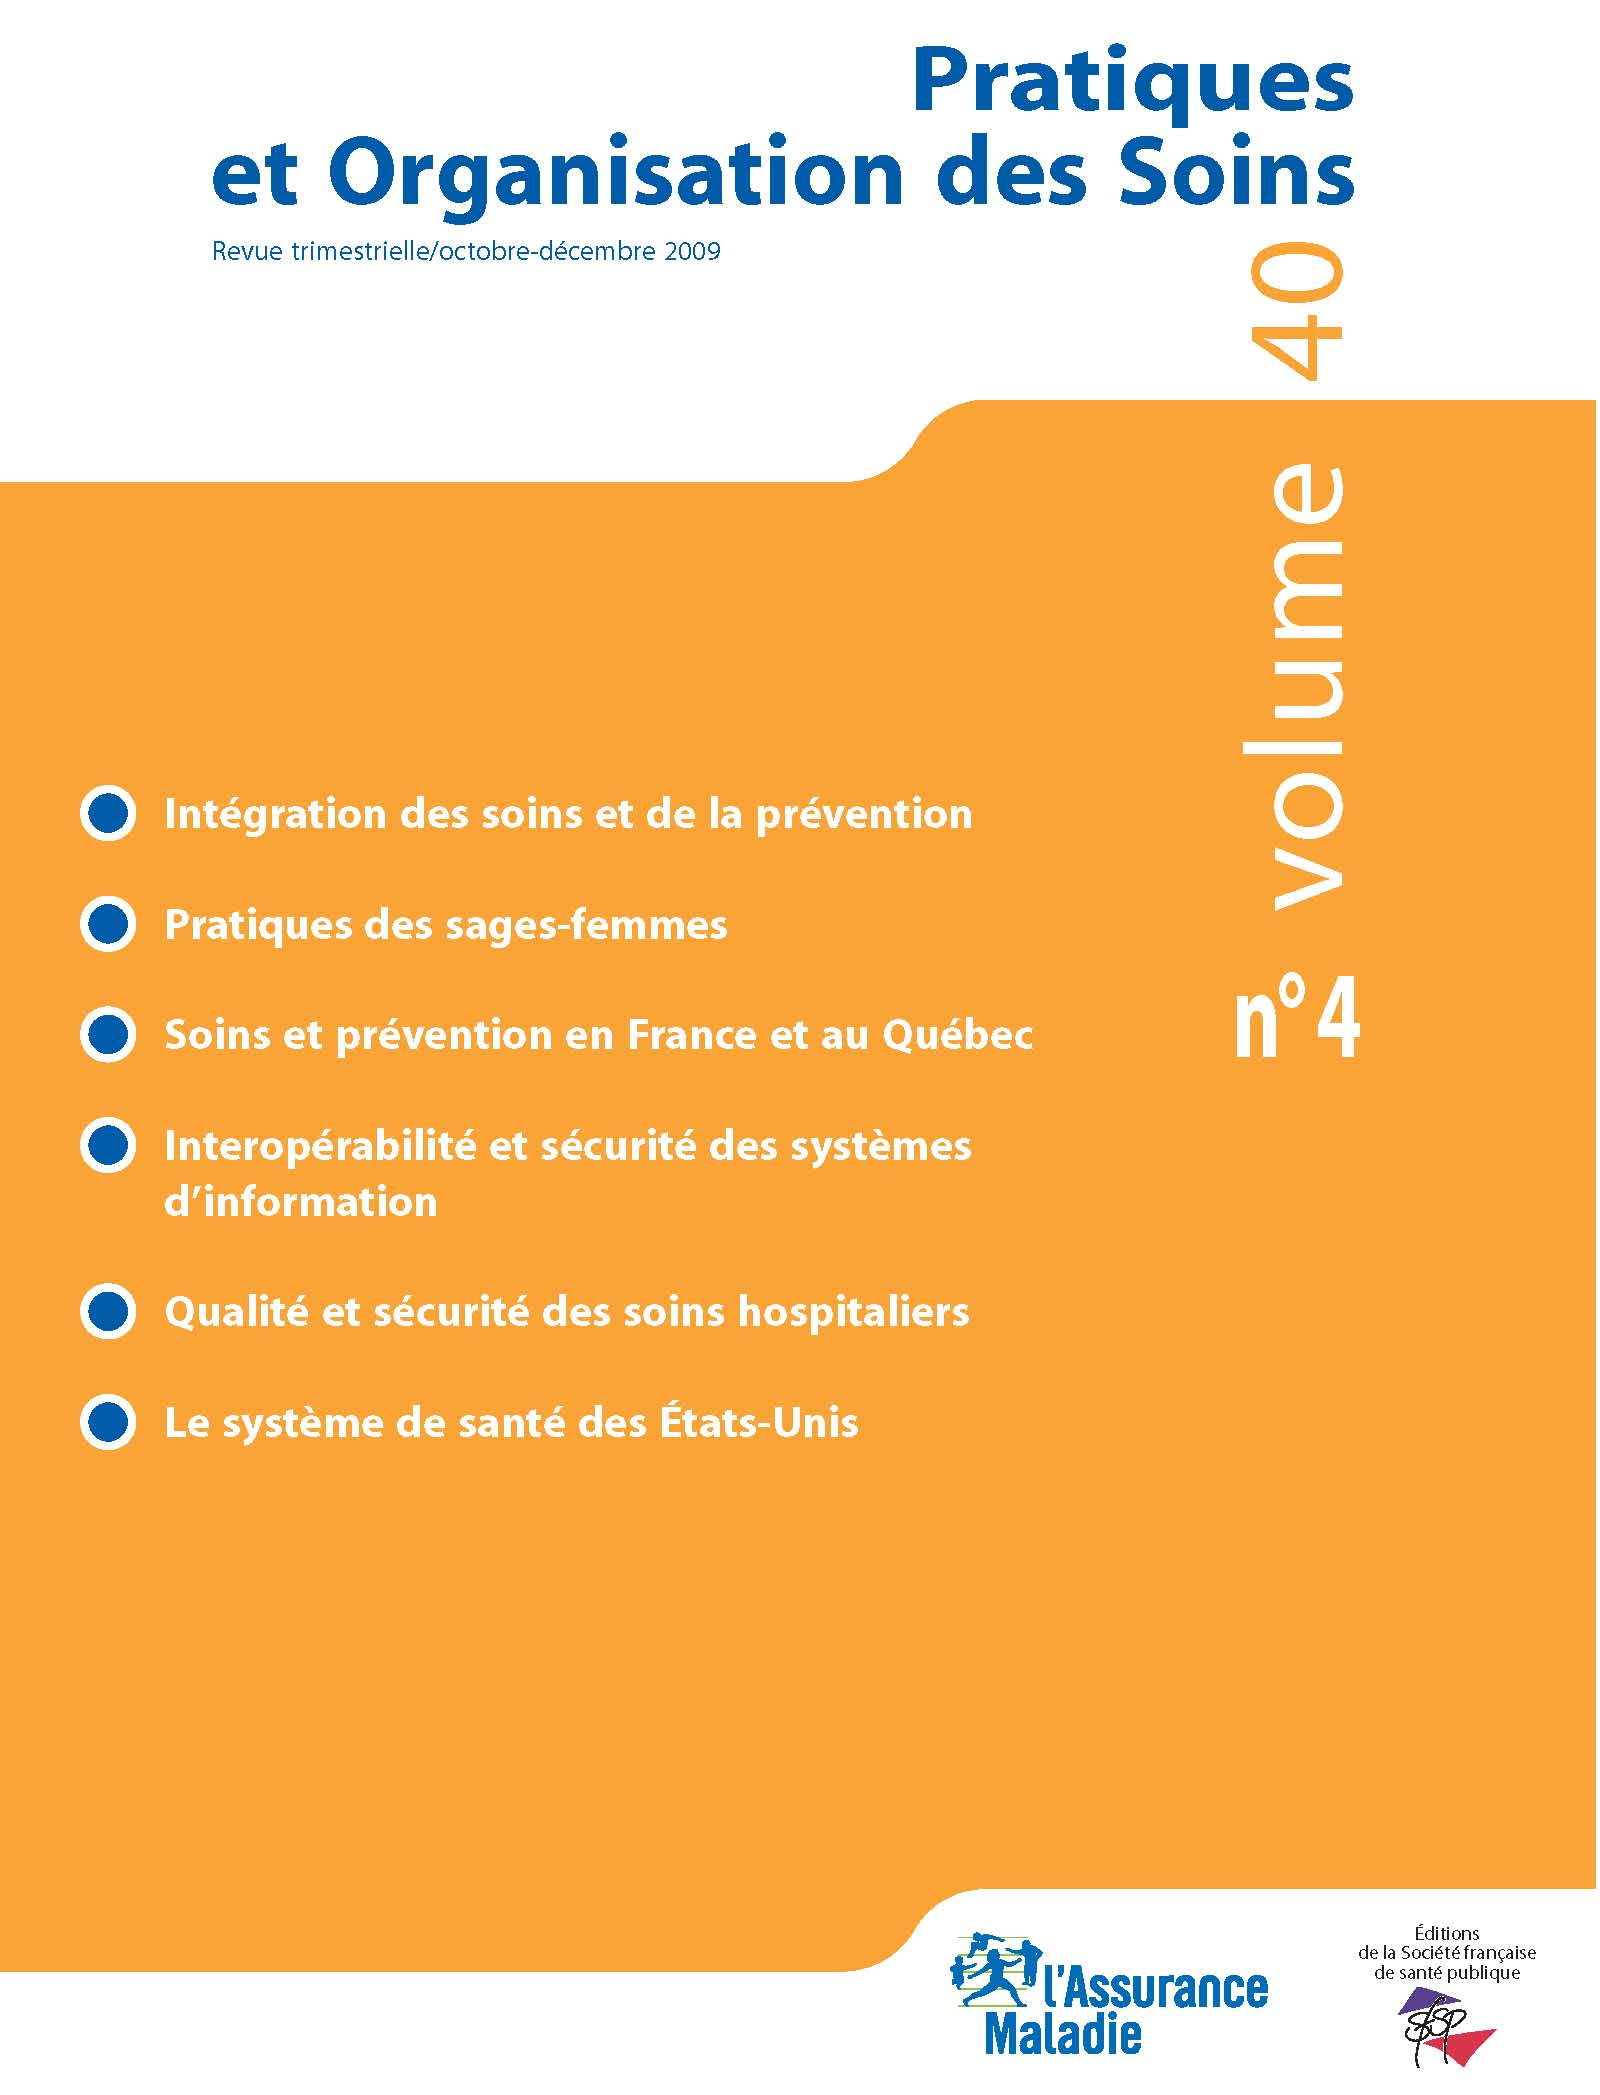 gestionnaire internet orange version 7.4